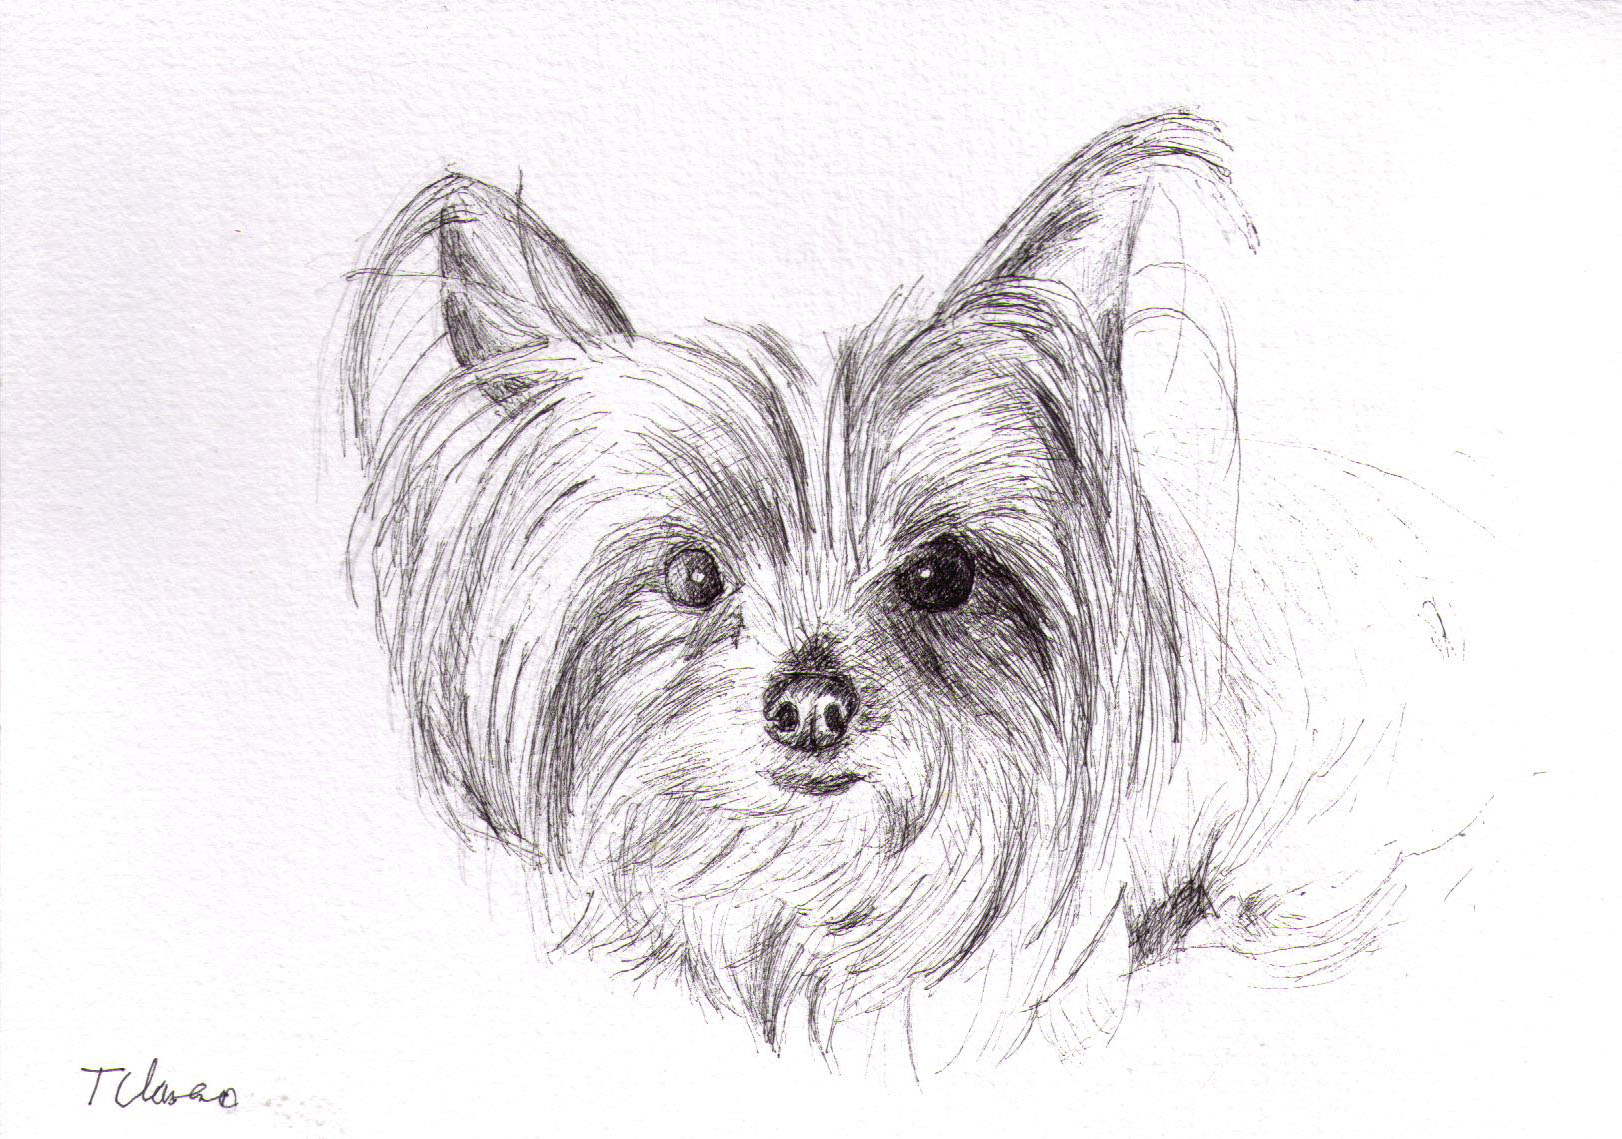 Commissioned drawing of a dog in ballpoint pen